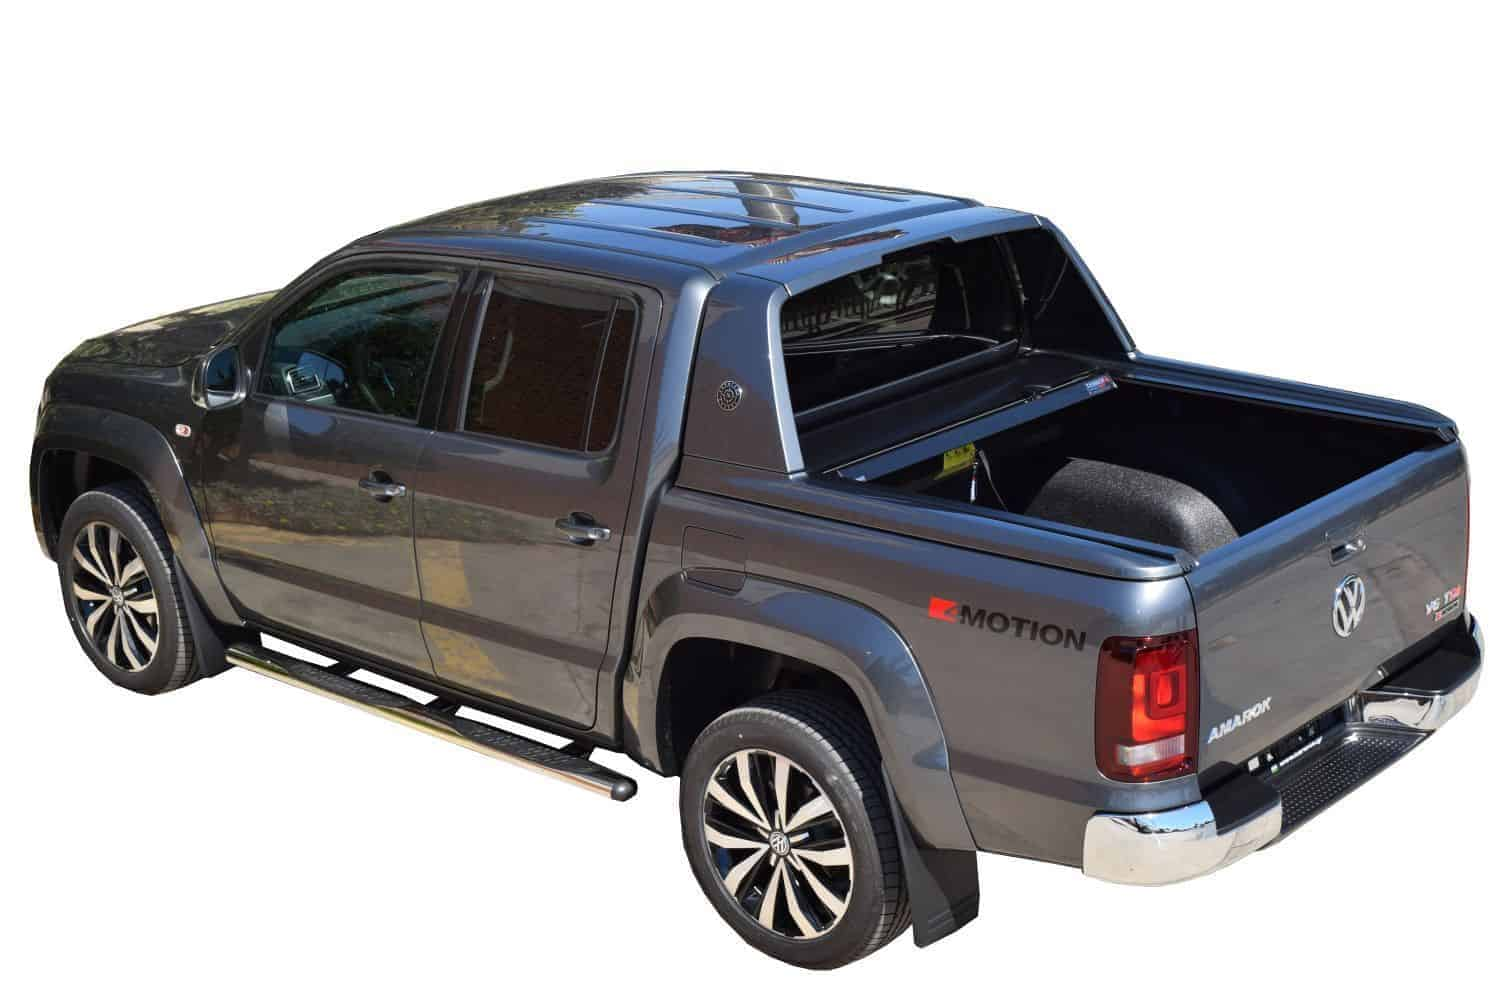 vw amarok aventura double cab 2017 sot 1318. Black Bedroom Furniture Sets. Home Design Ideas